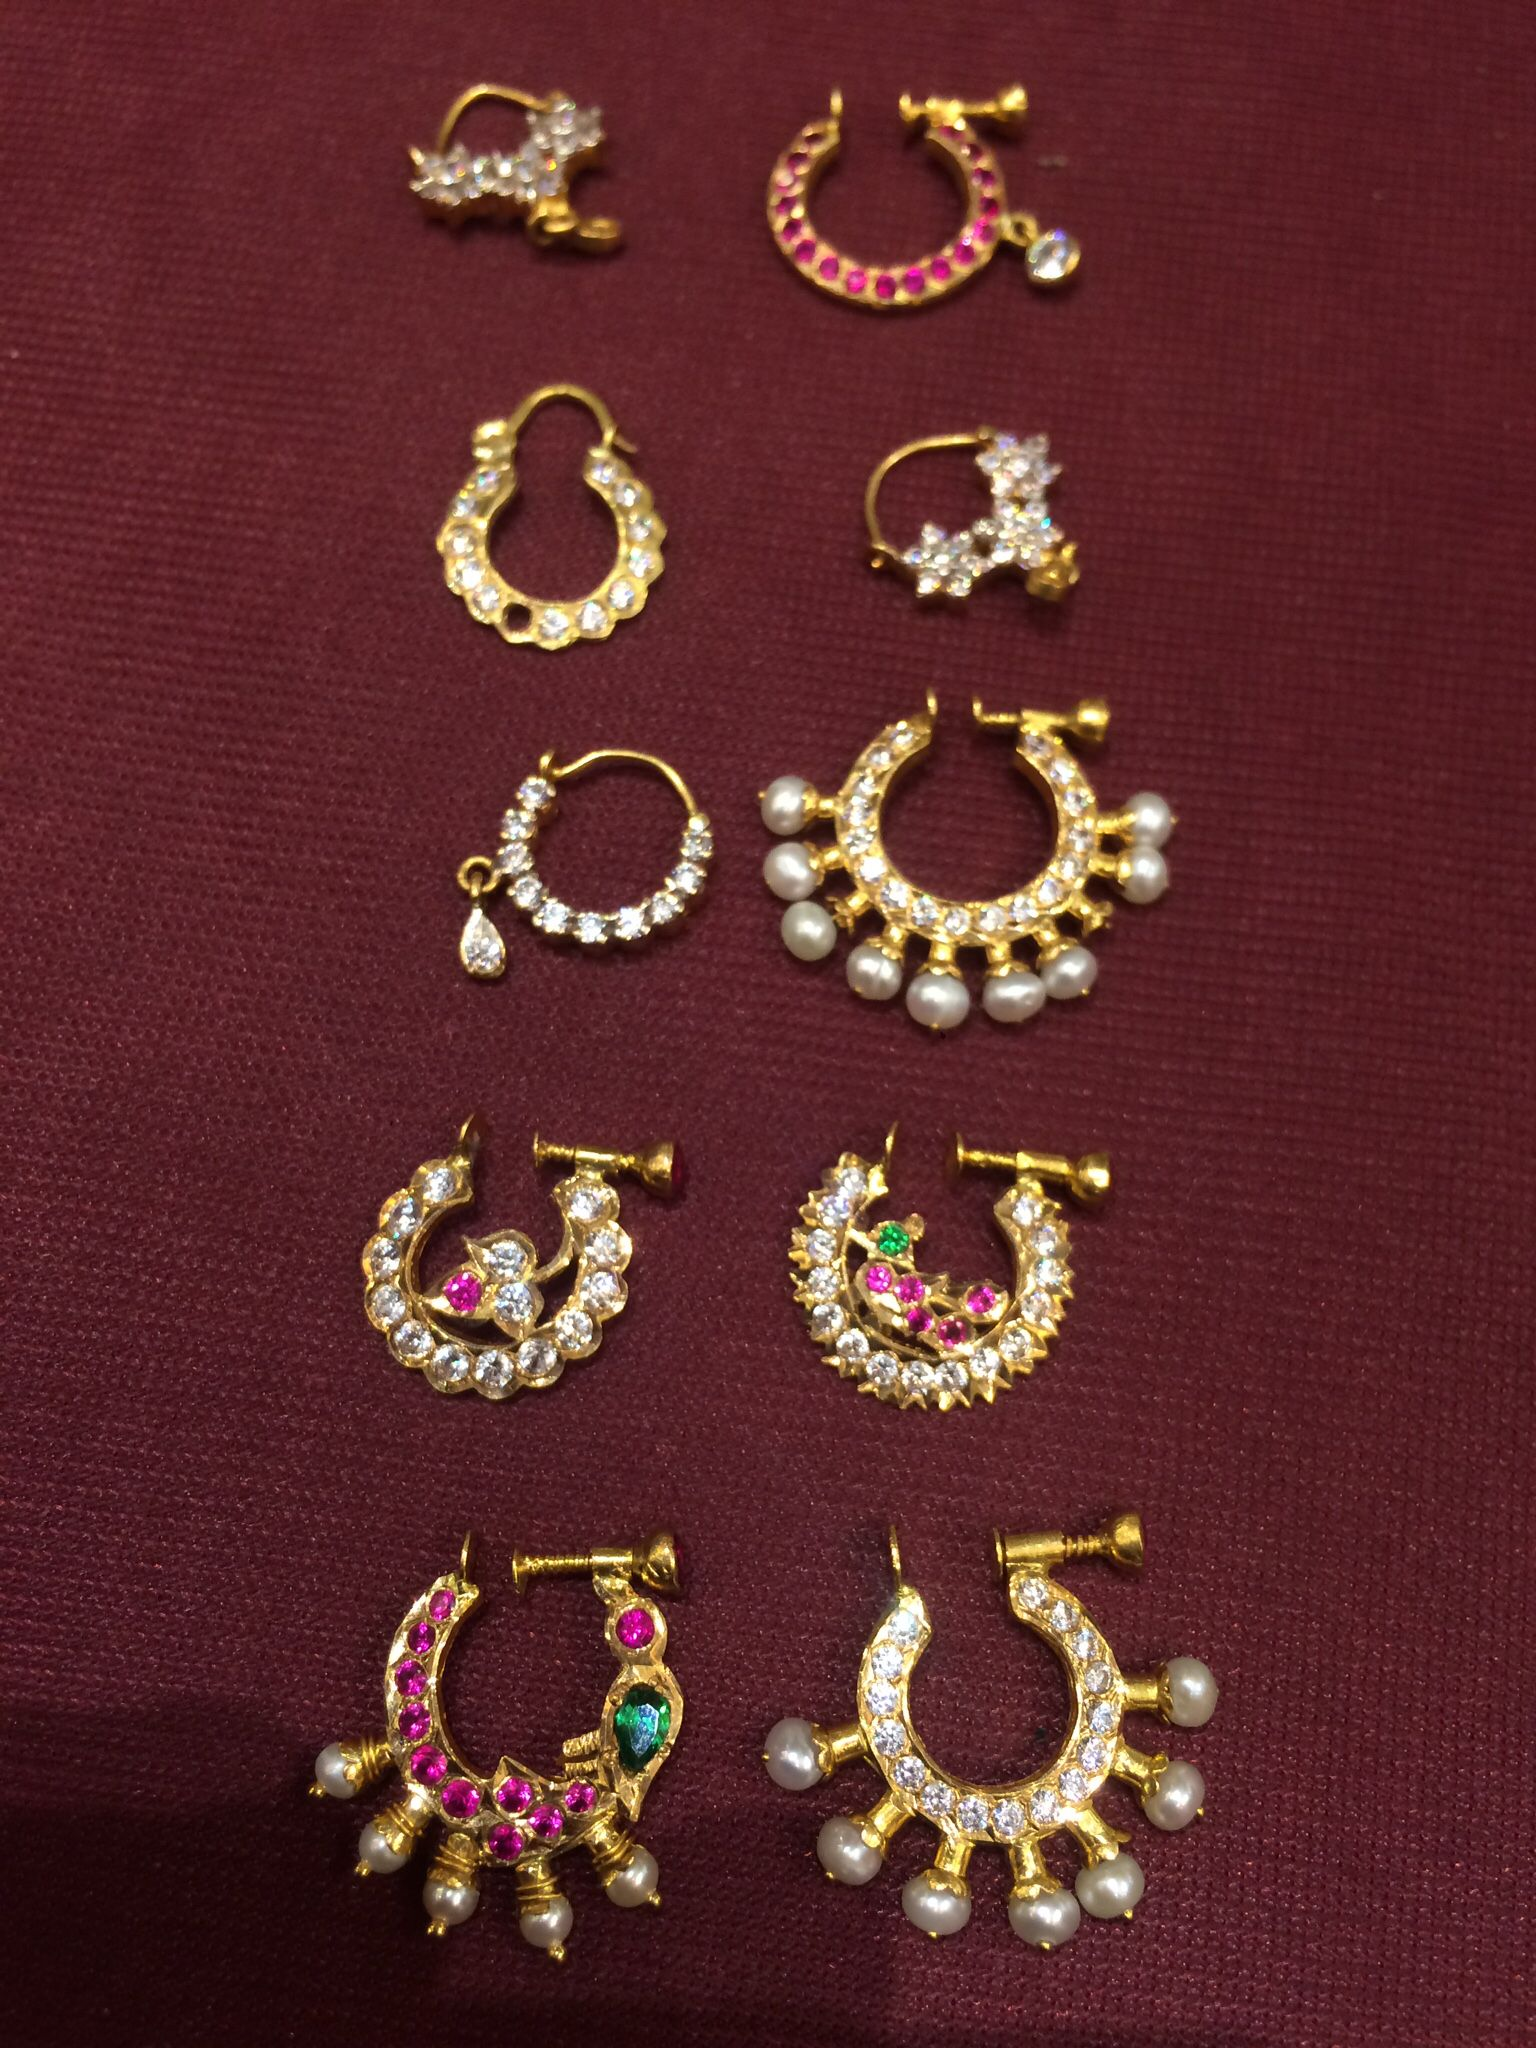 About nath nose ring mukku pudaka on pinterest jewellery gold nose - Nose Rings Antique Pearl Ruby Gold Mookothi Nathni Nose